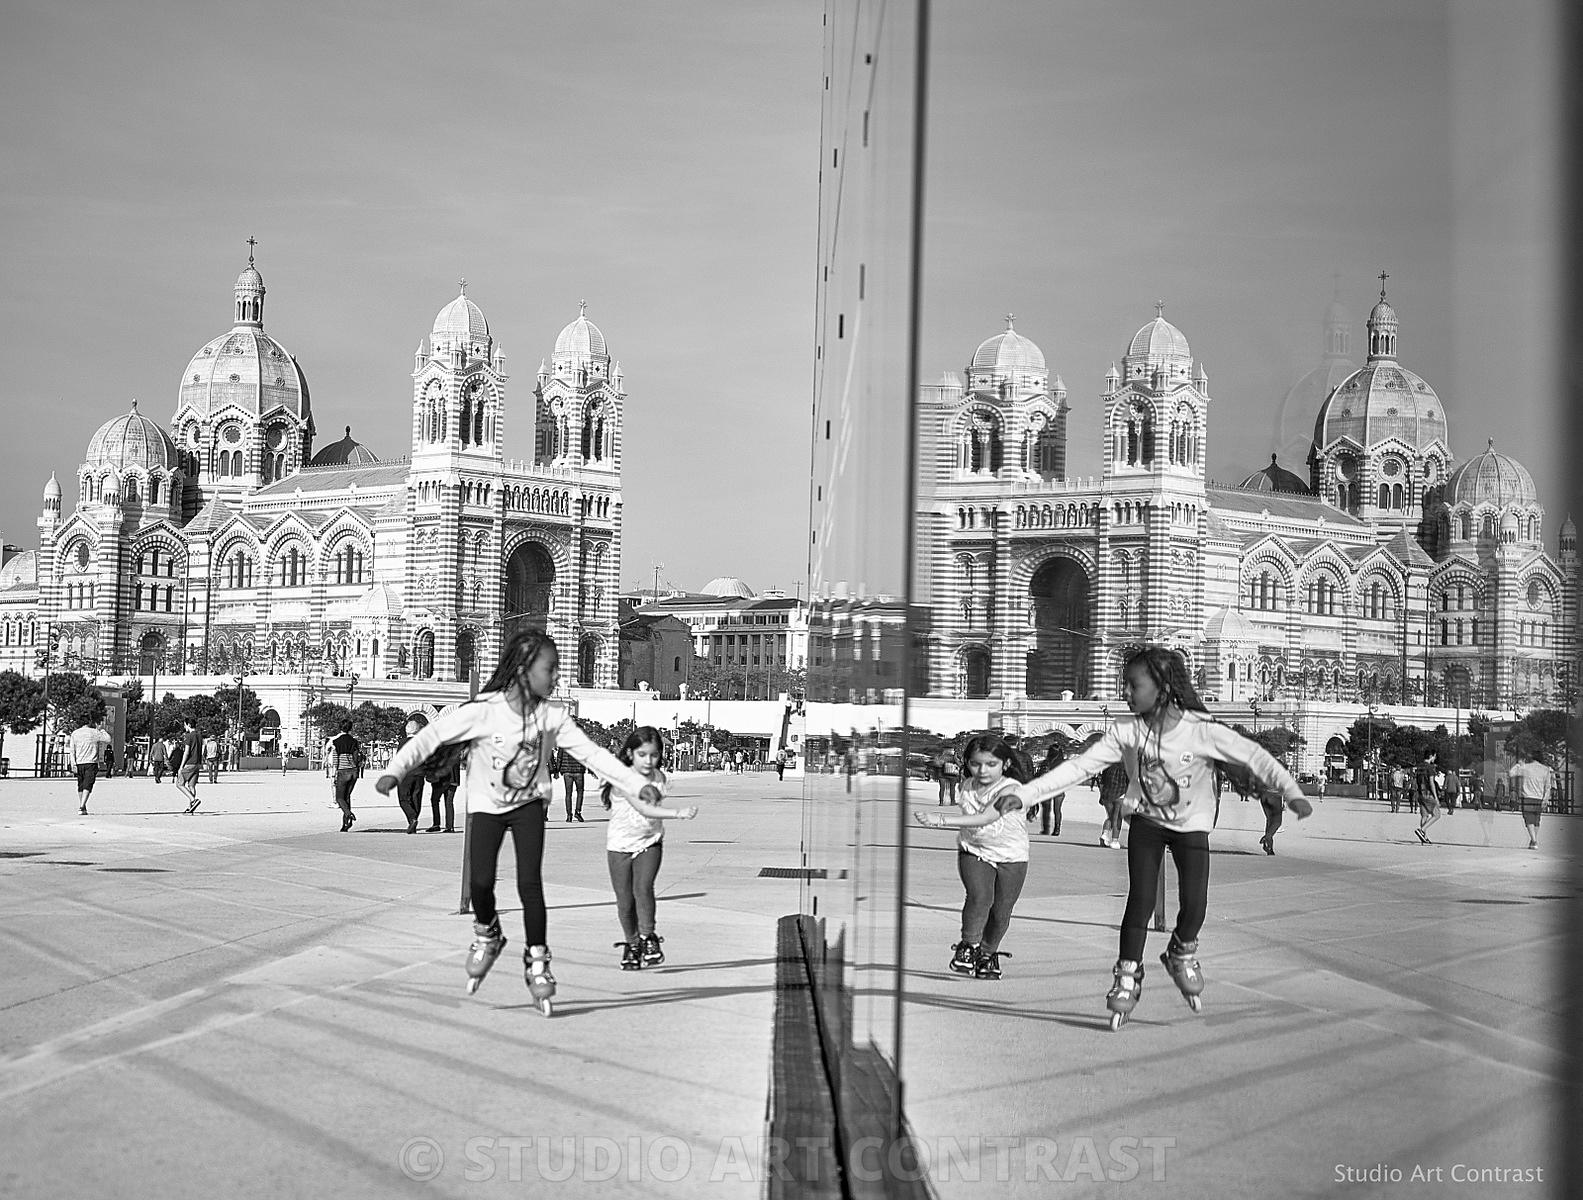 marseille_reflet_muceum_cathedrale_major_fille_roller_black_tresse_BNW_low